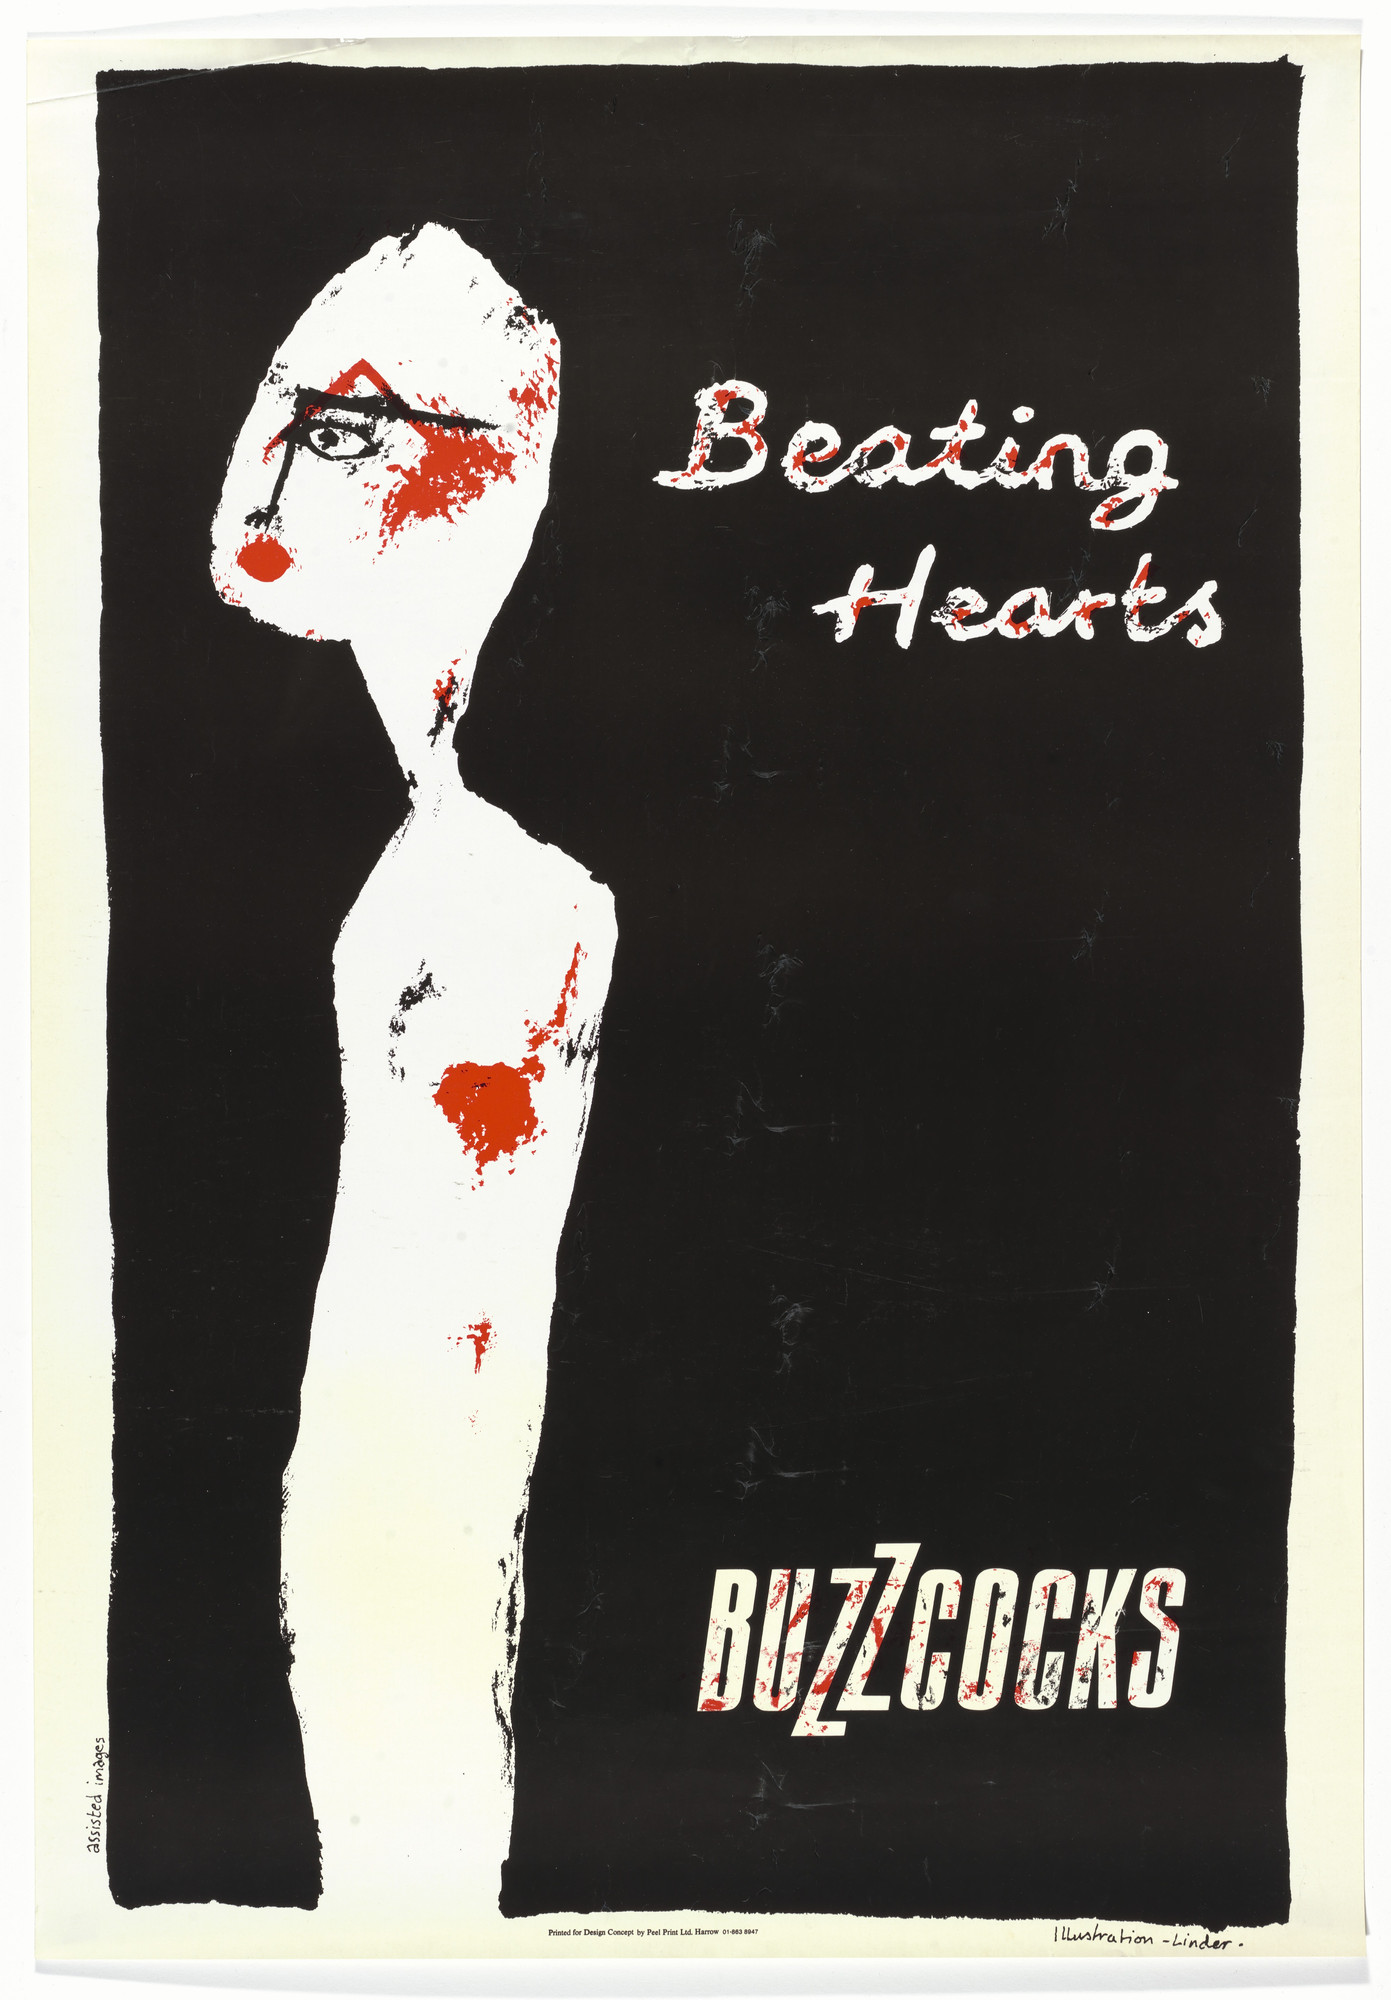 Linder [Linda Sterling]. Buzzcocks, Beating Hearts (Poster for Beating Hearts tour). c.1979